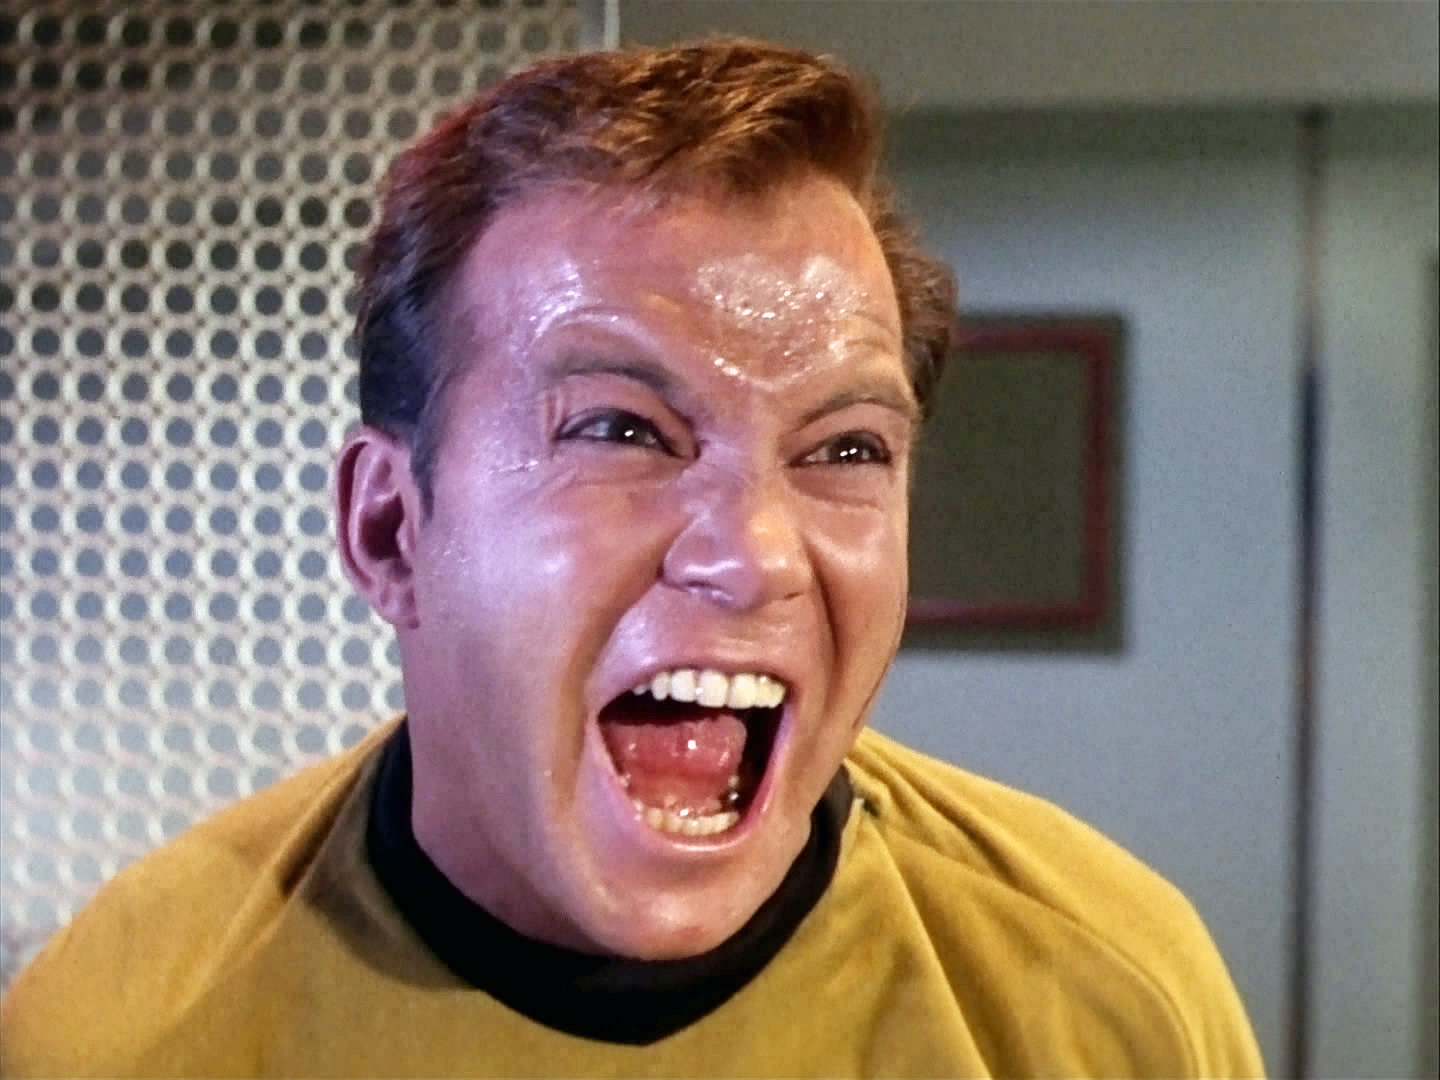 William Shatner as Captain Kirk, screaming and sweating like a pig!